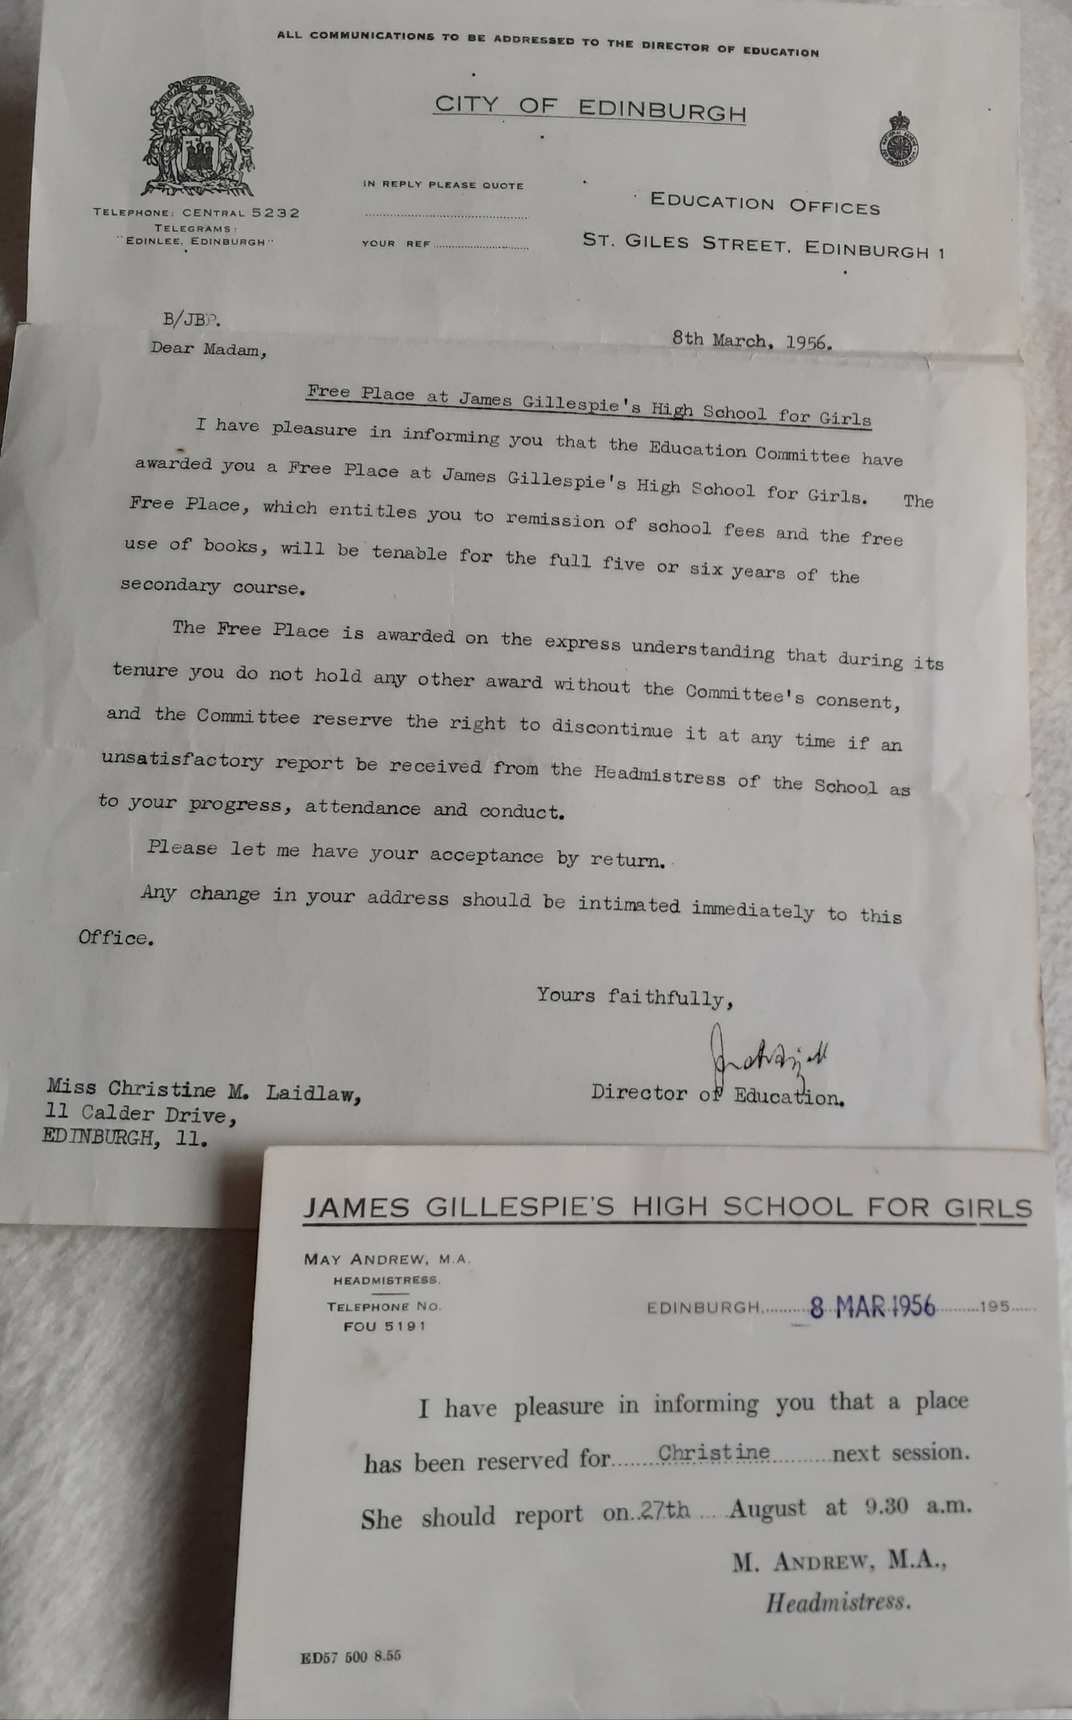 James Gillespies Acceptance Letter to Christine Laidlaw 1956